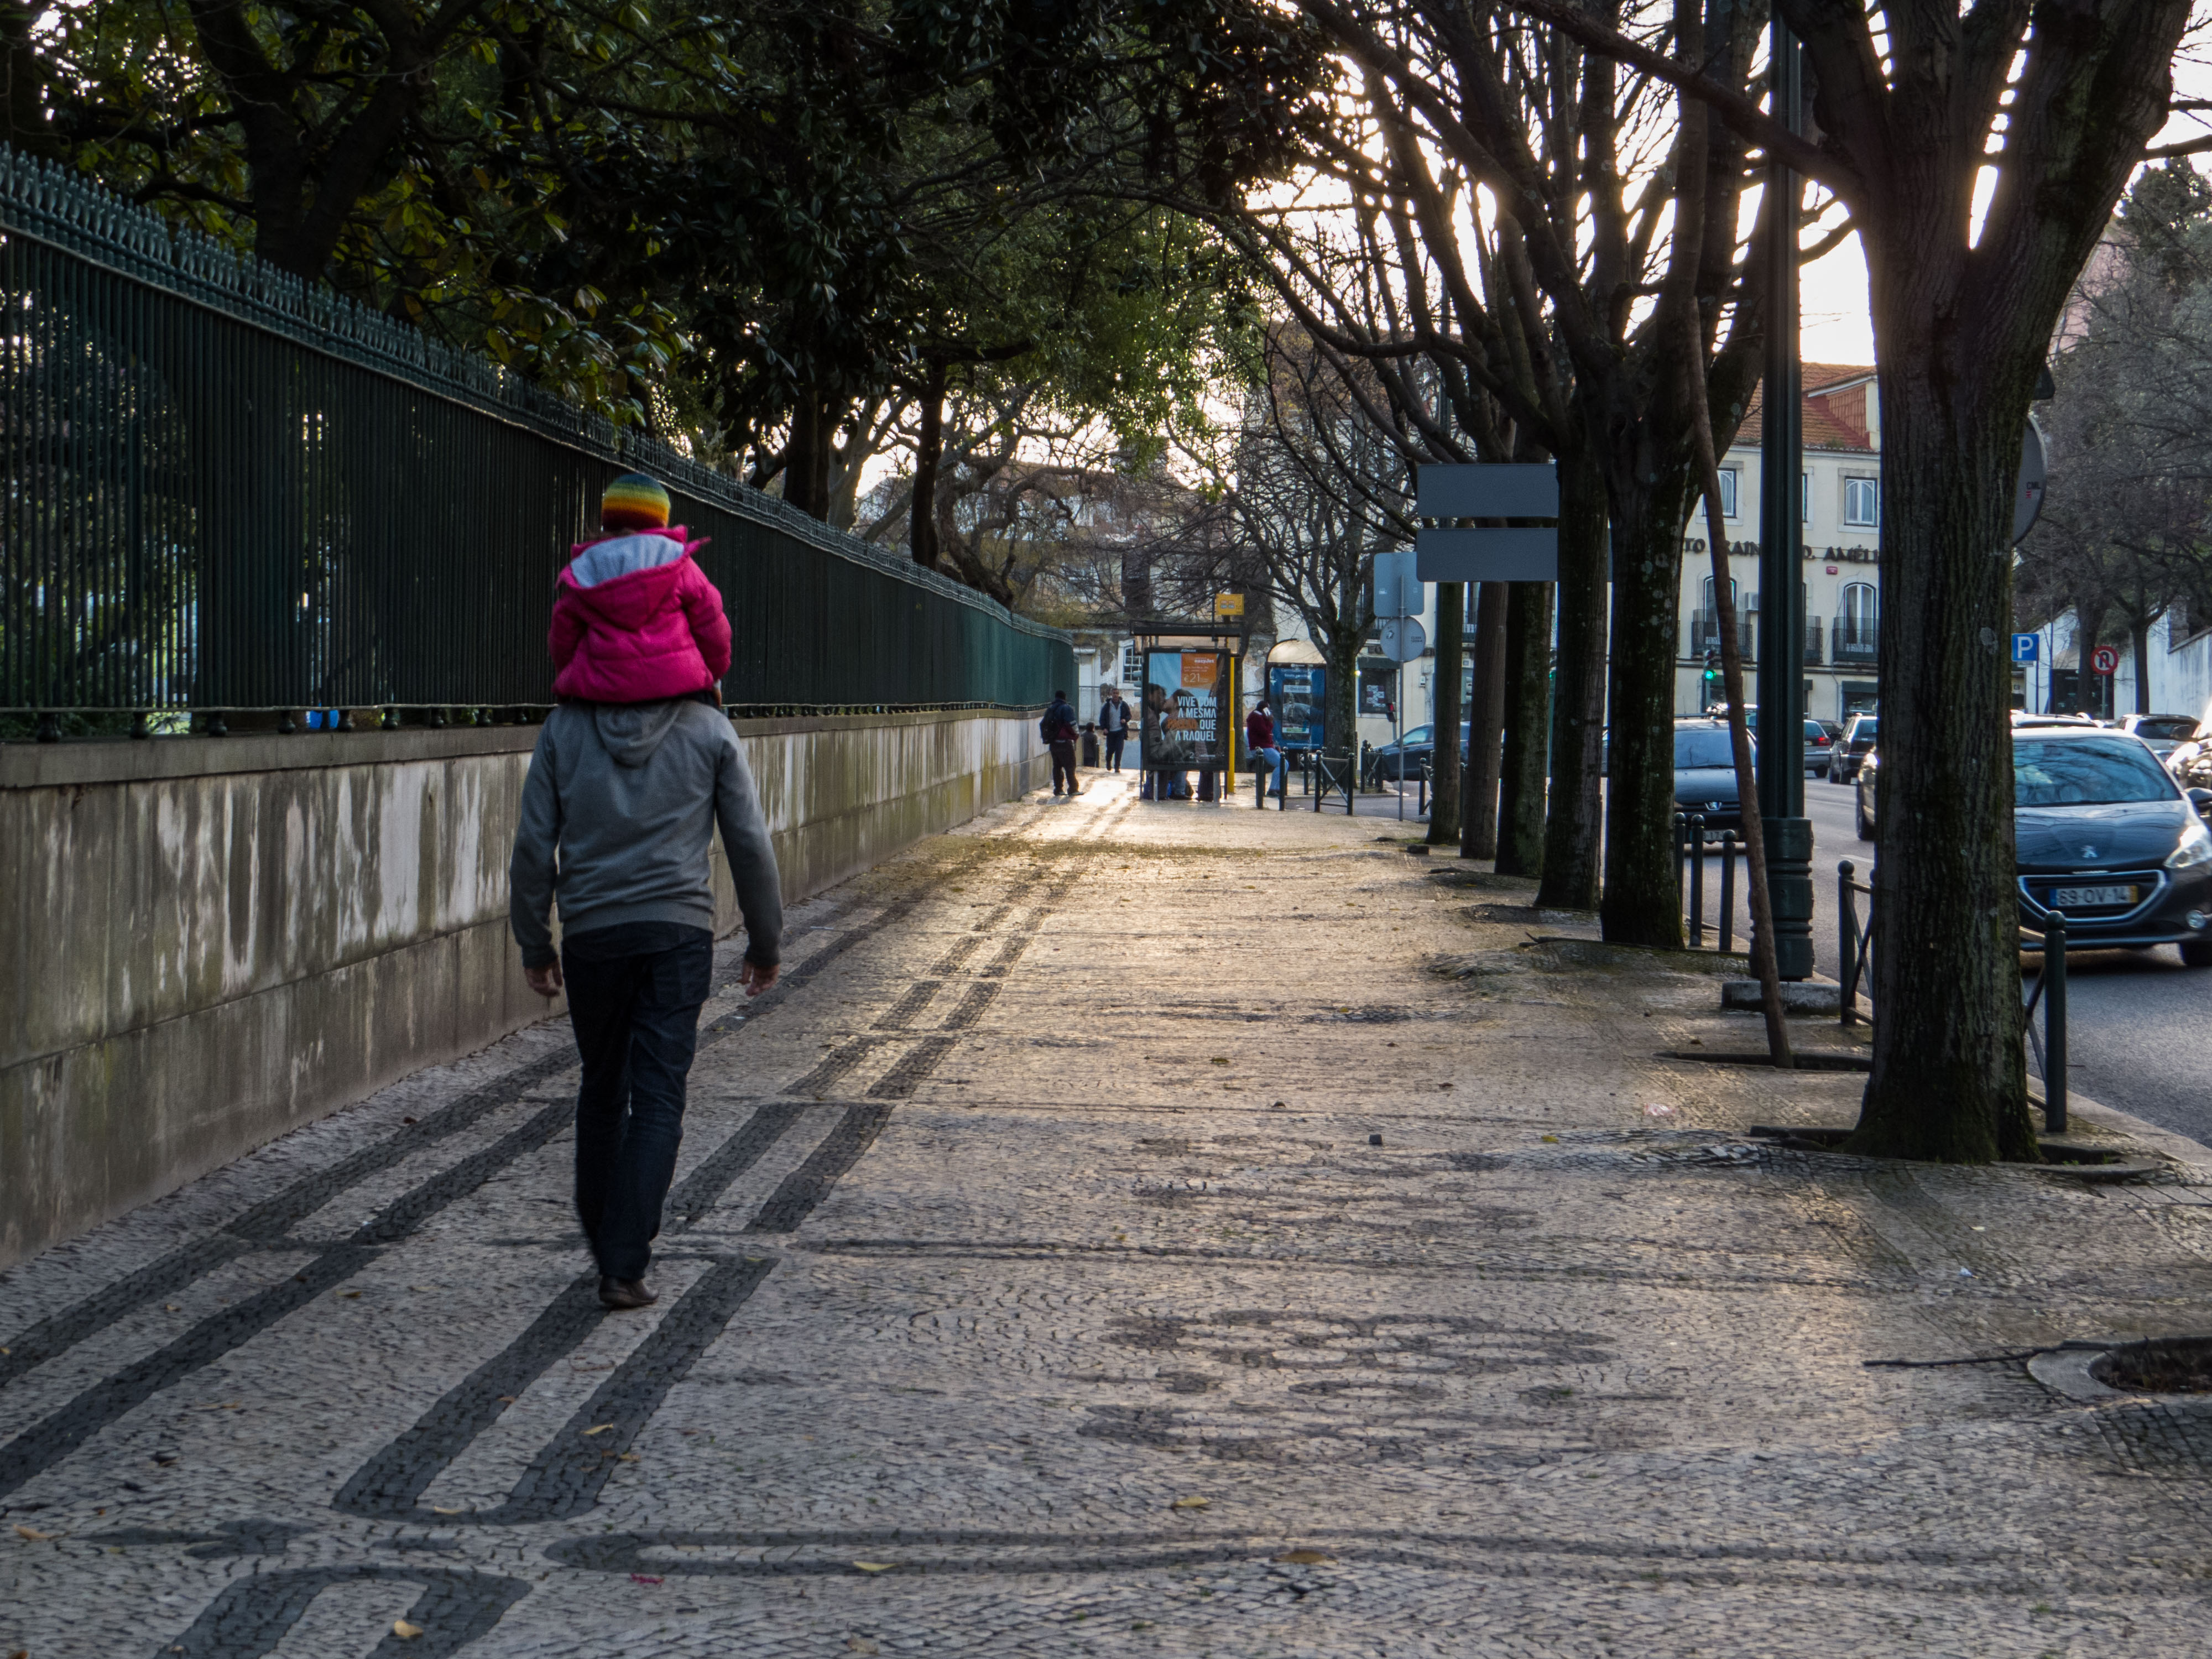 Family evening walk, People, Lovely, Portugal, Road, HQ Photo